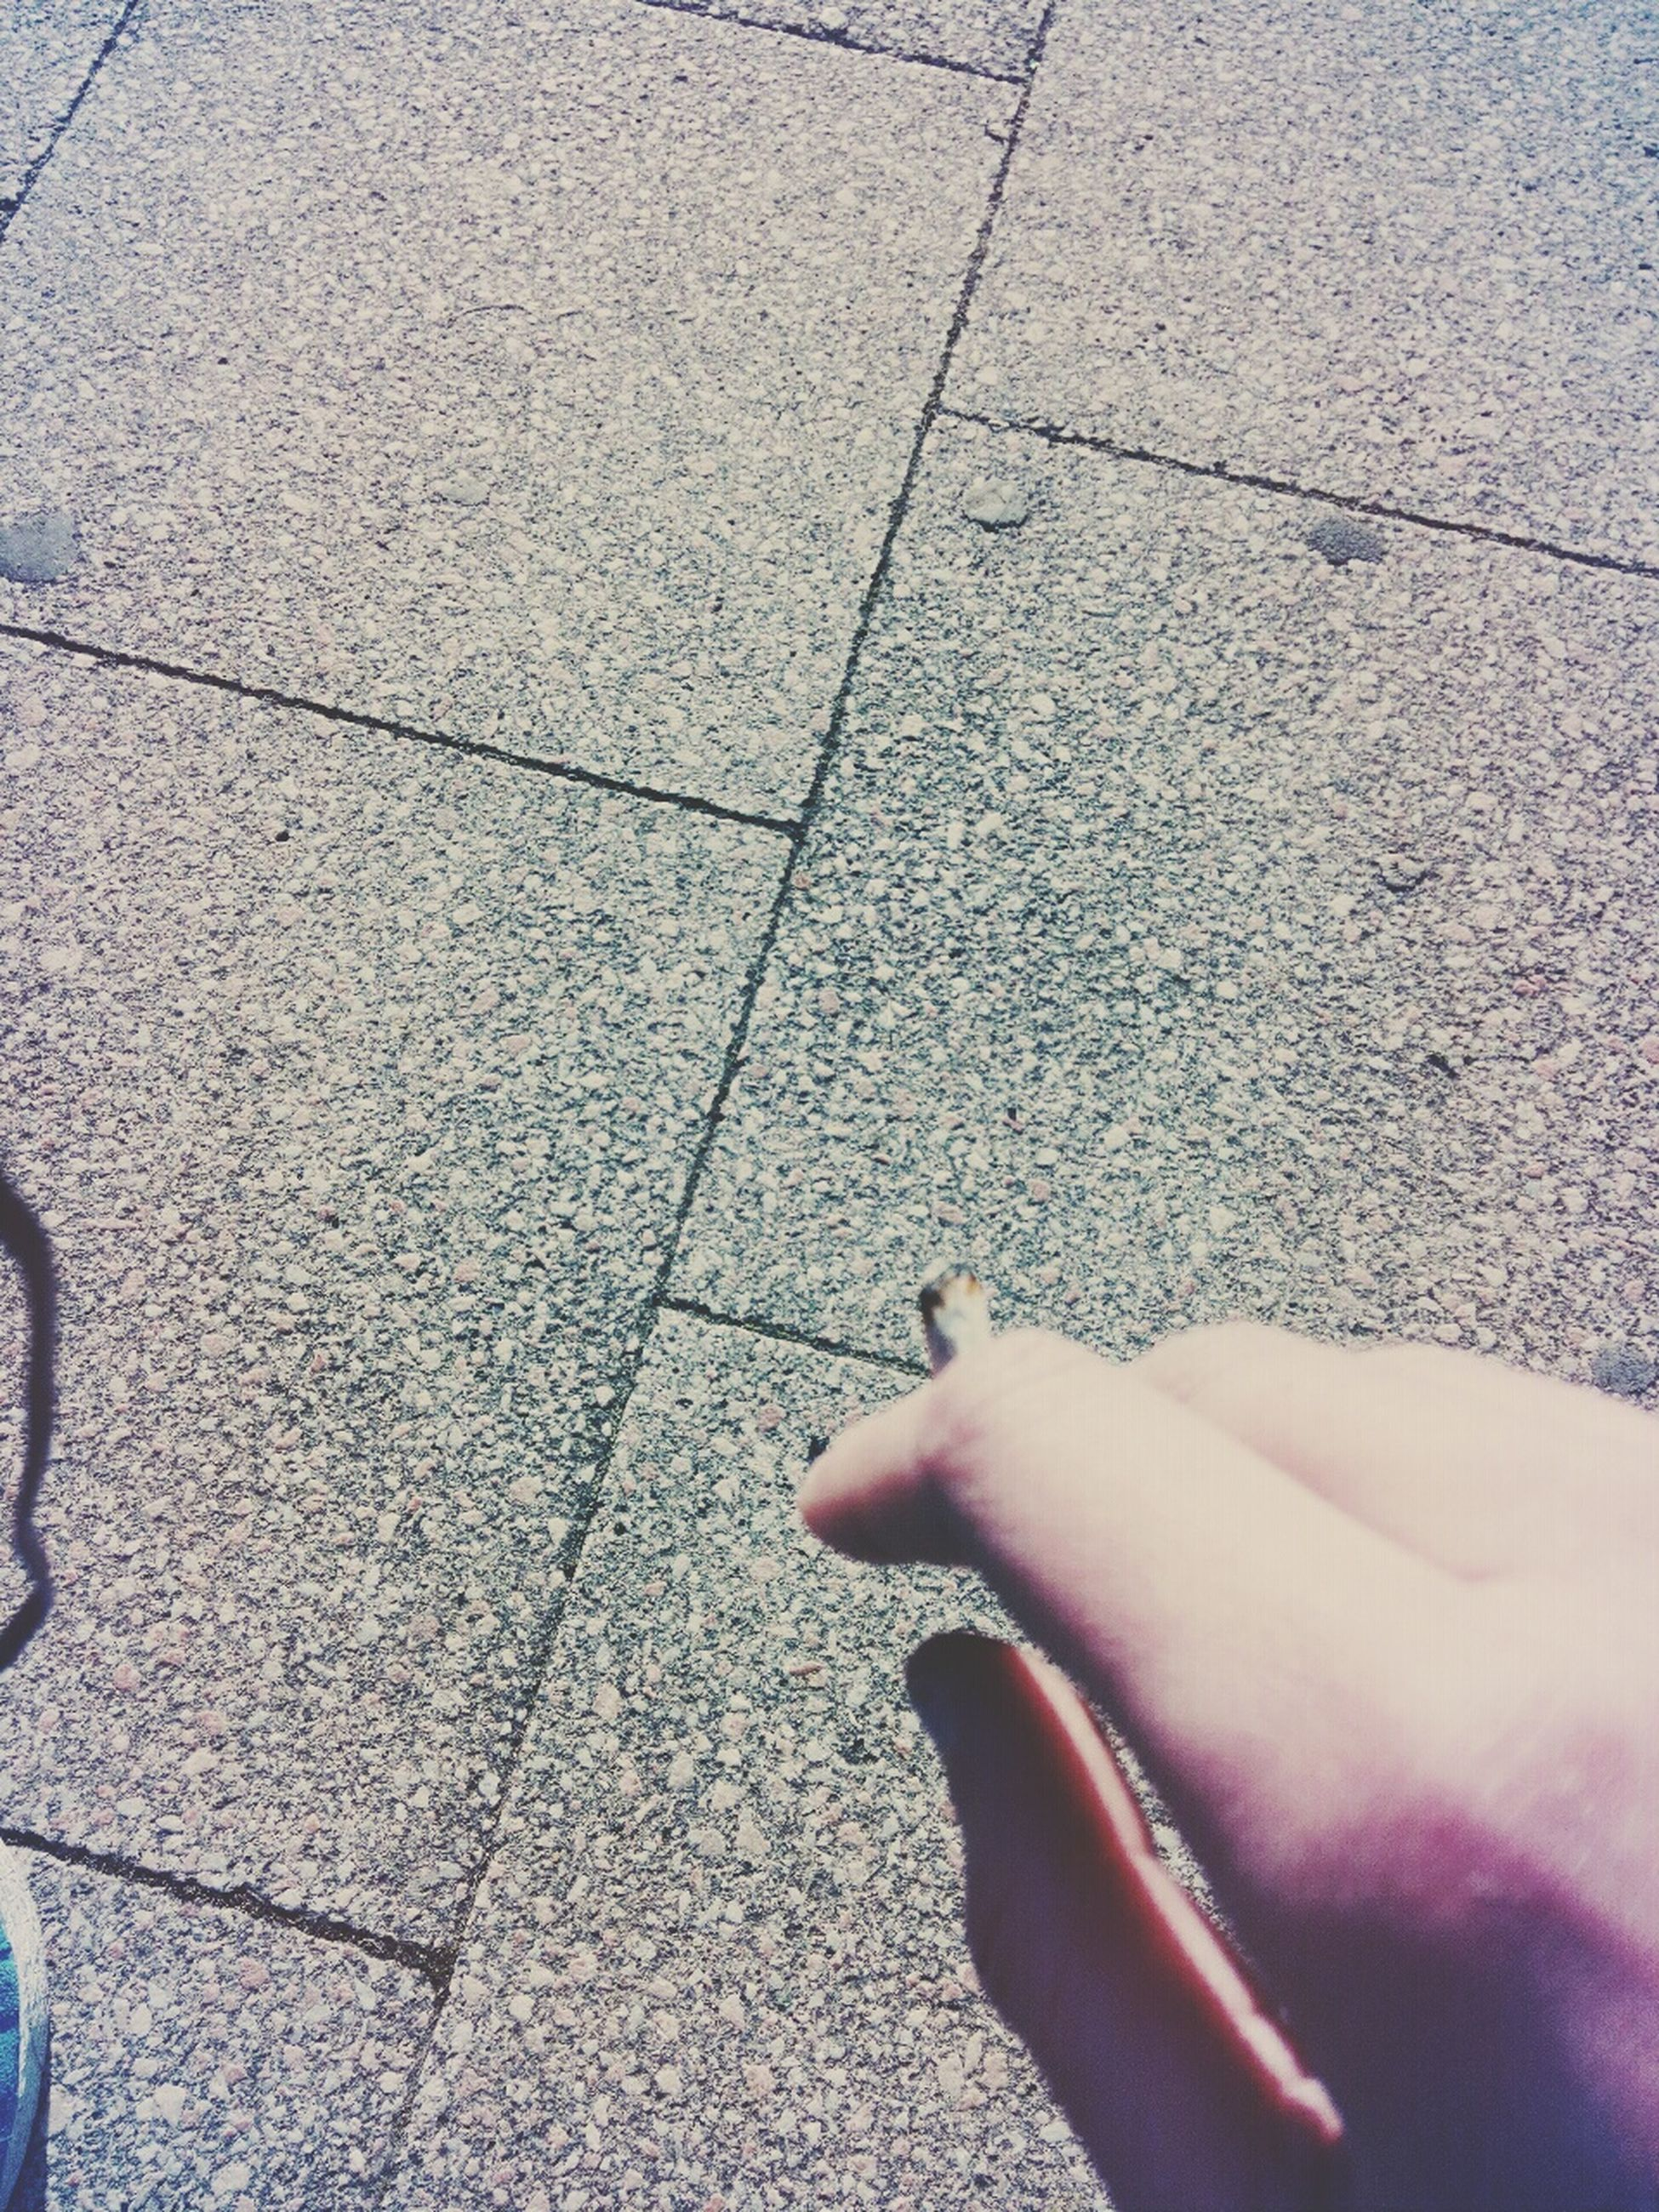 low section, person, high angle view, shoe, street, human foot, personal perspective, cobblestone, lifestyles, tiled floor, footwear, paving stone, part of, standing, sidewalk, unrecognizable person